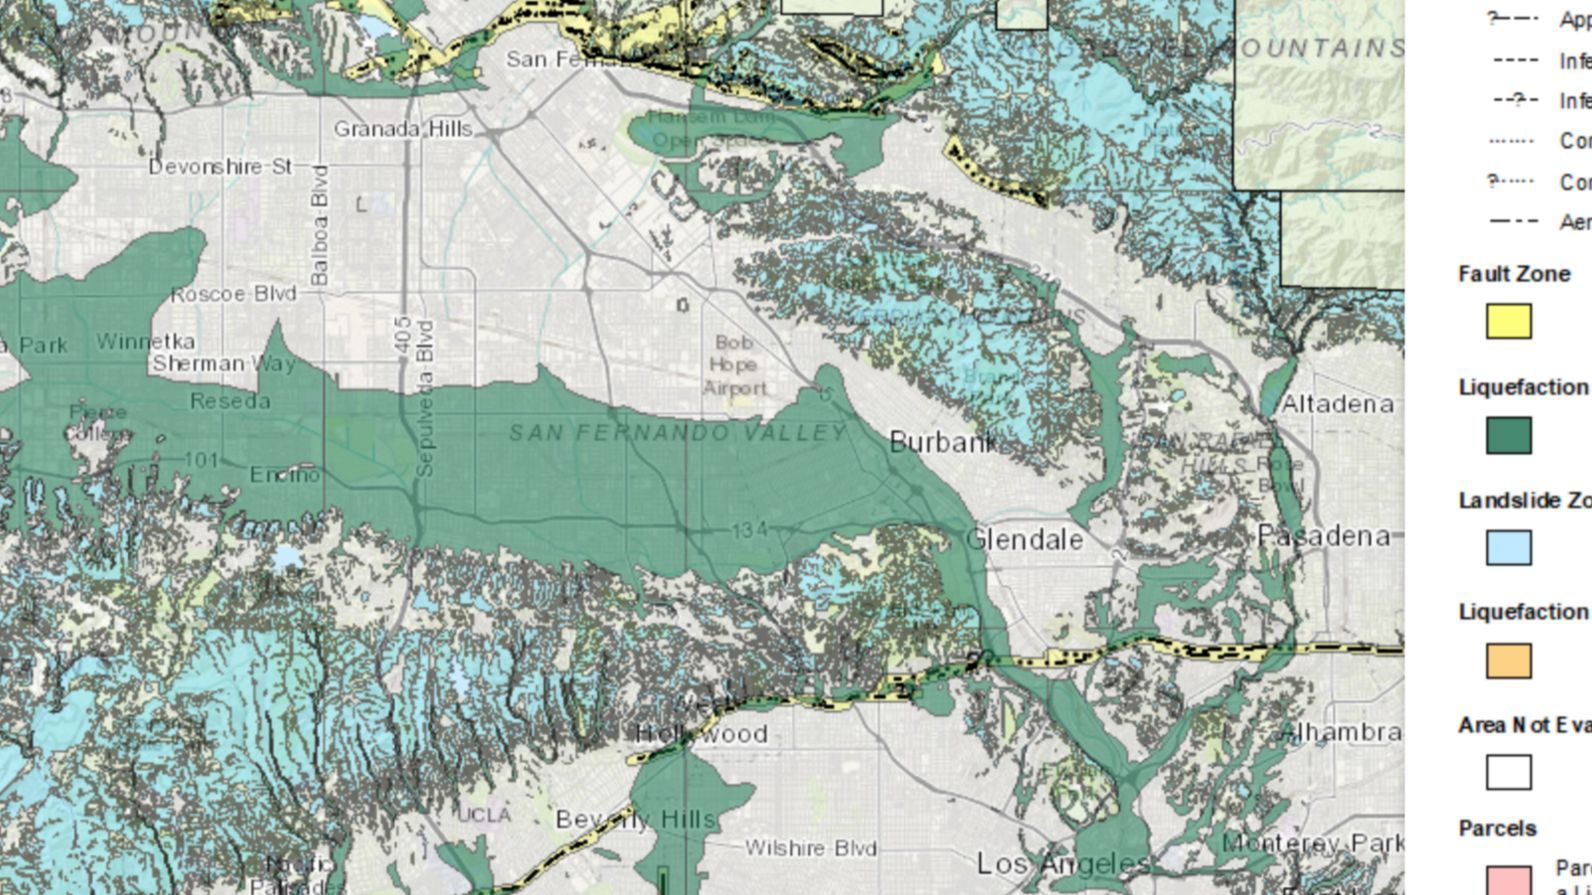 Worried About Being On Top Of An Earthquake Fault New California Maps Will Let You Know On A Smartphone Los Angeles Times 120+ breweries inhabit the san francisco bay area. an earthquake fault